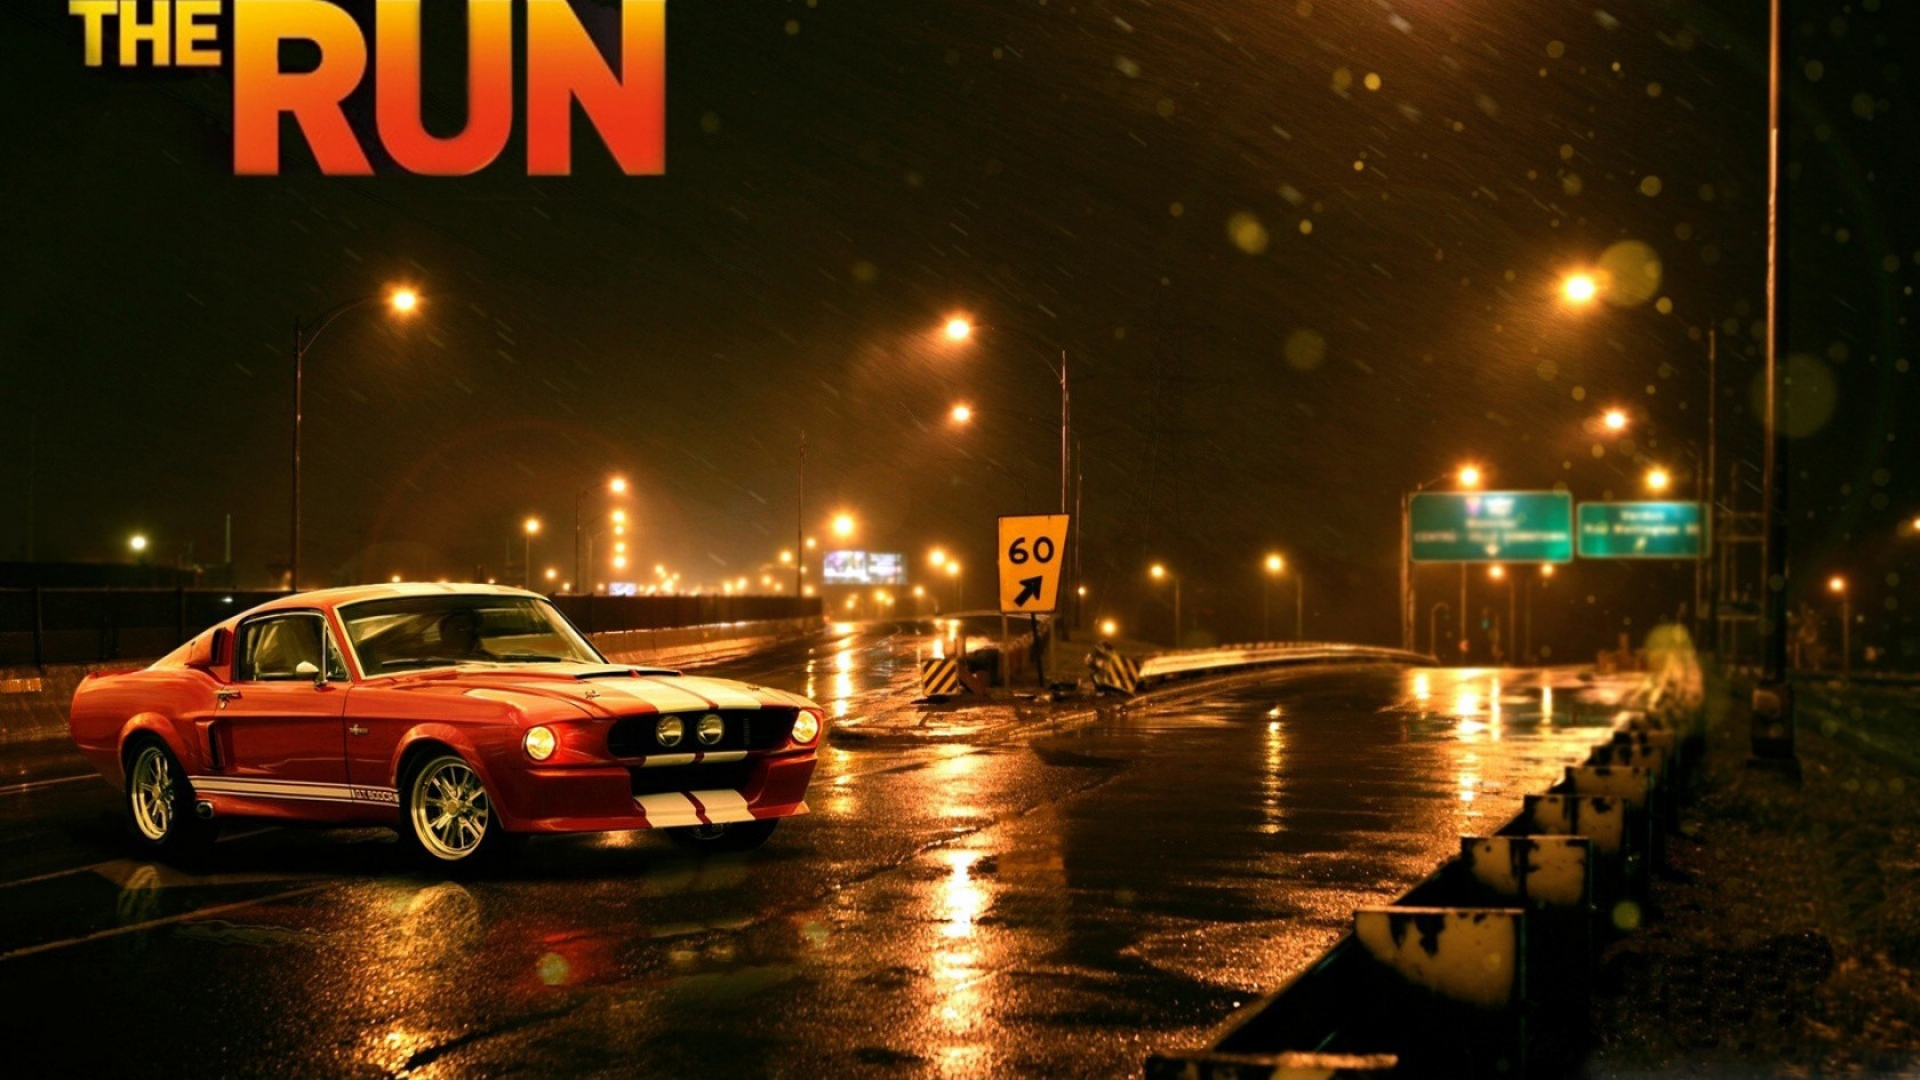 Download Wallpaper 1920x1080 Nfs, Need For Speed, The Run